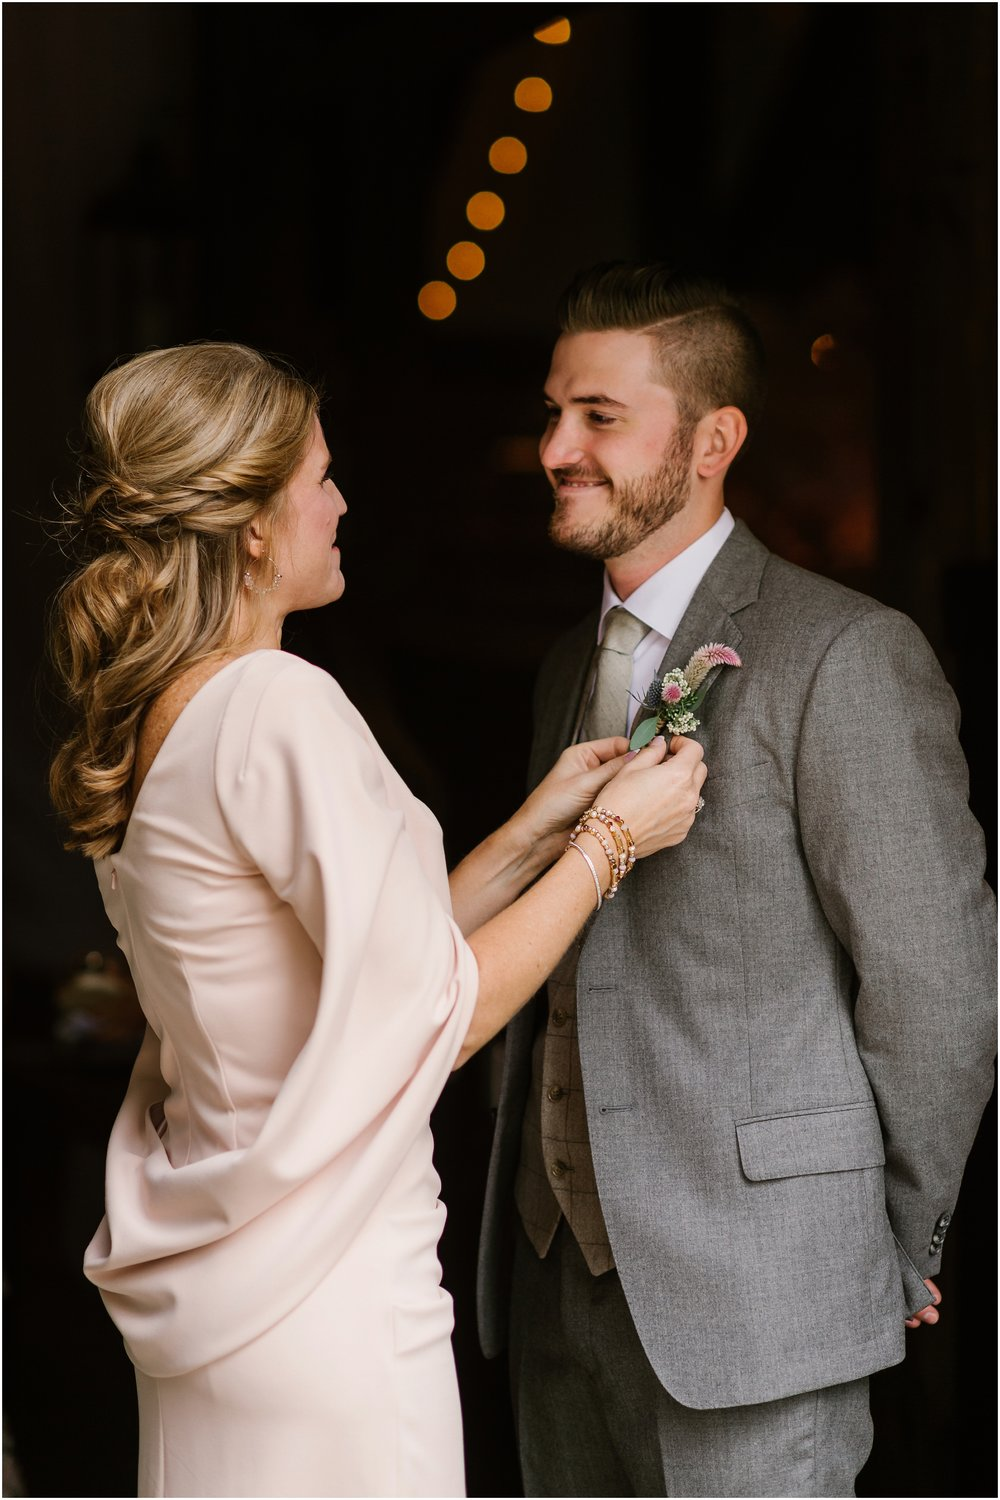 Rebecca_Shehorn_Photography_Indianapolis_Wedding_Photographer_9263.jpg